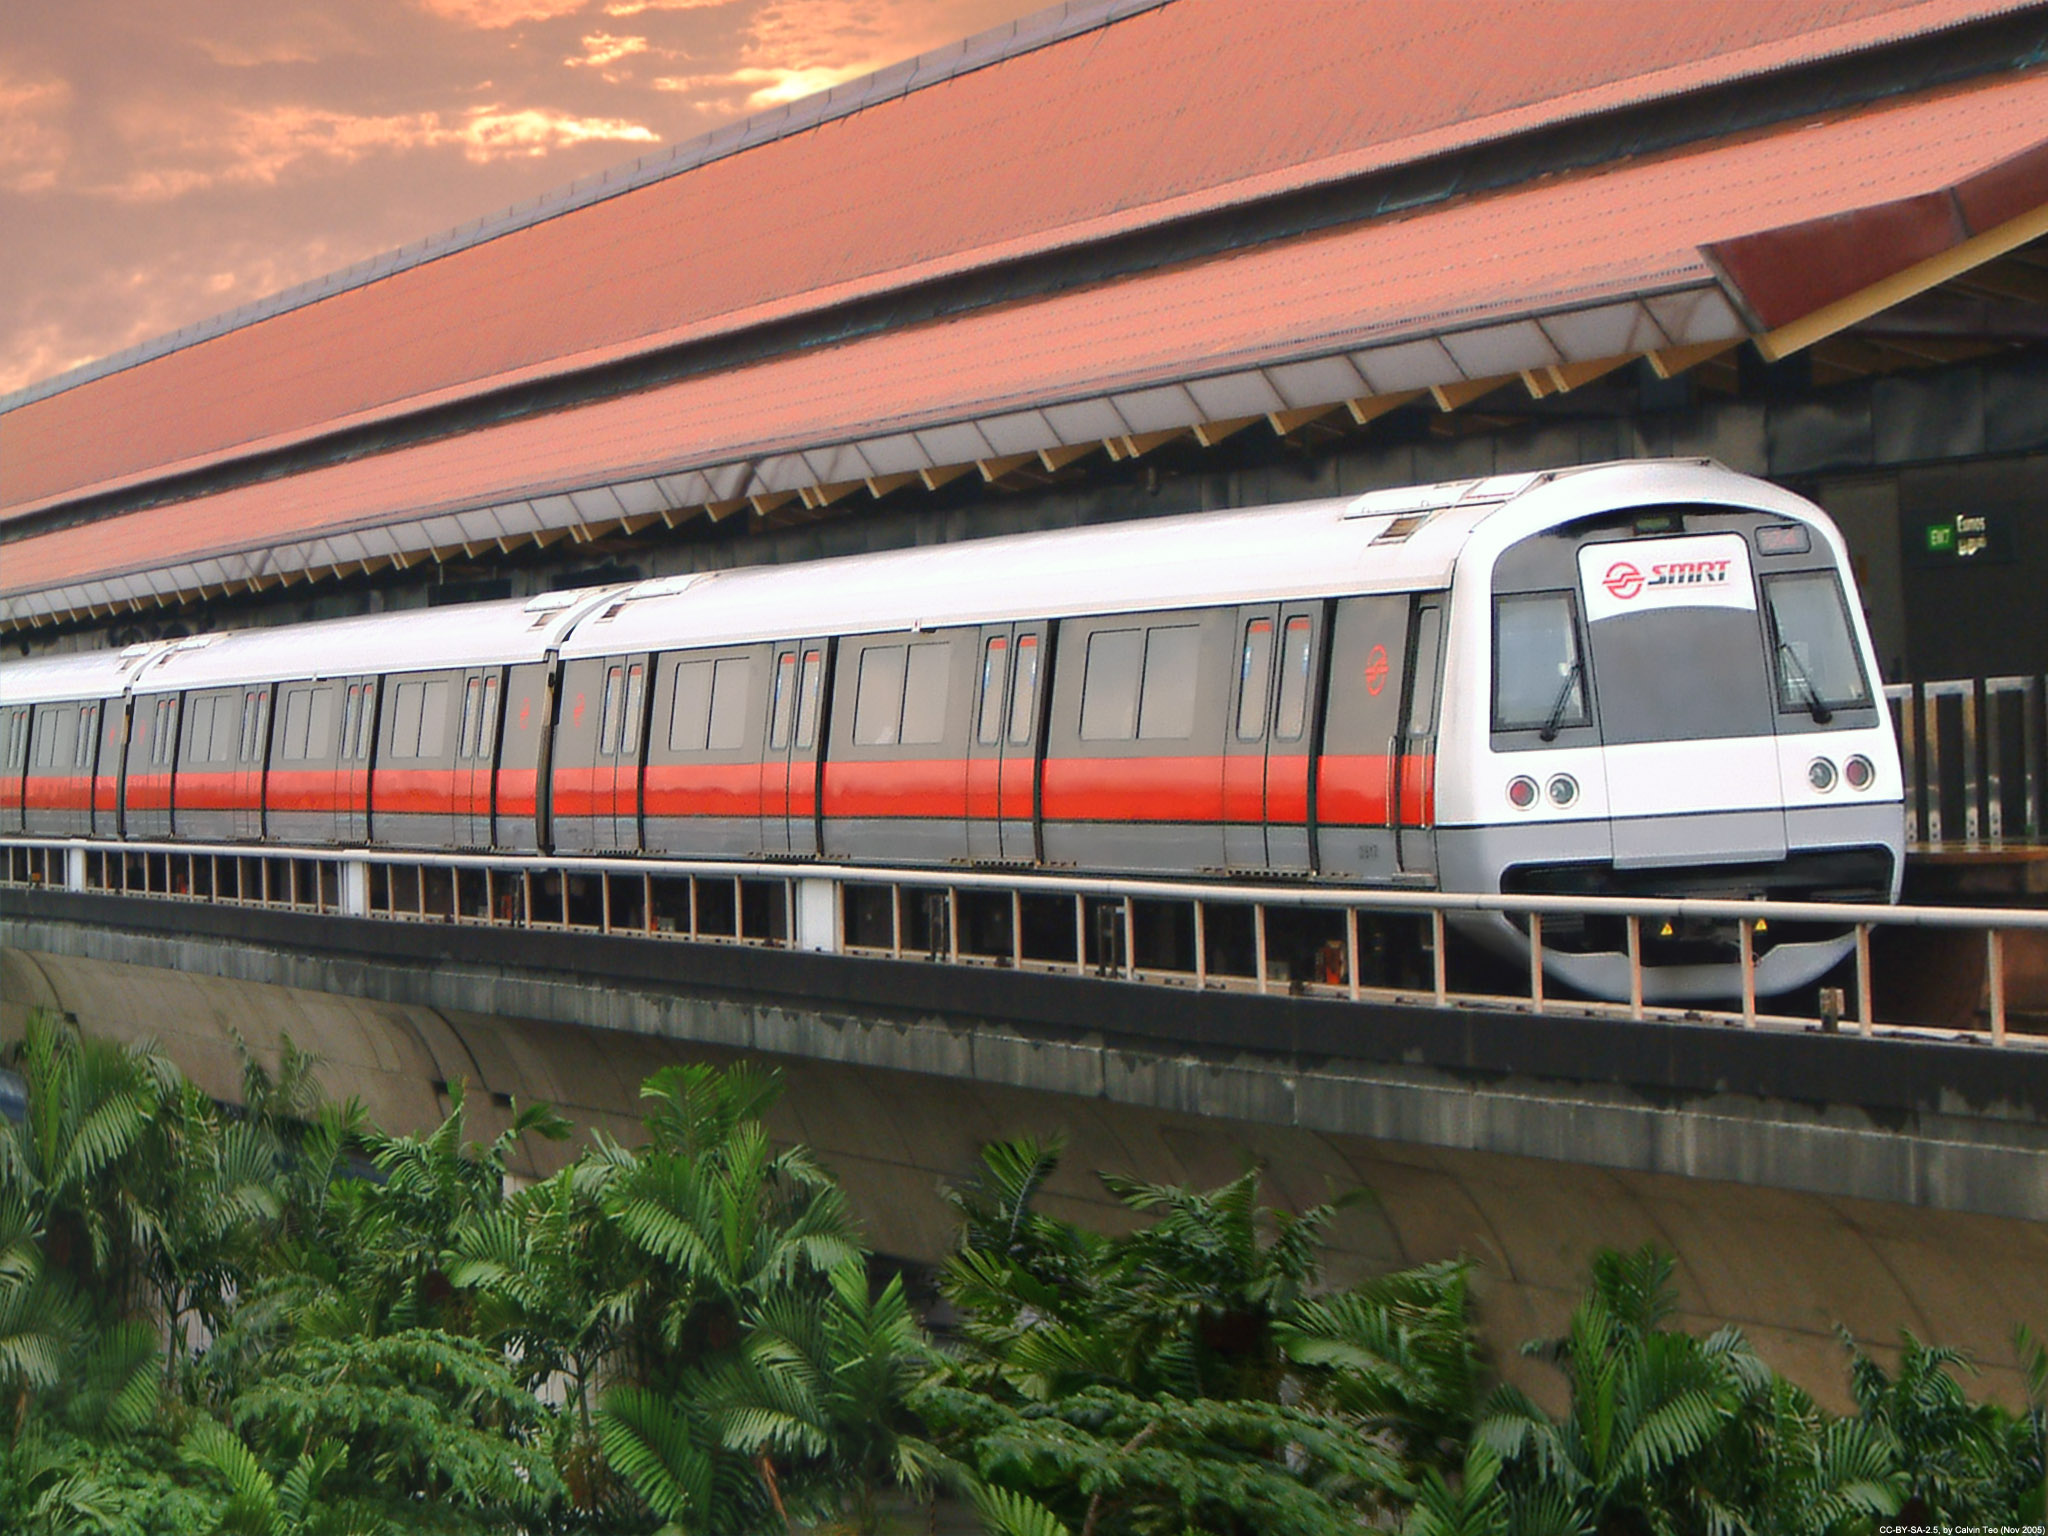 Singapore Government has drawn SGD9 million from the Public Transport Fund to make available the largest number of Public Transport Vouchers in a single exercise – 300,000 Public Transport Vouchers worth SGD30 each. Photo courtesy: Wikimedia